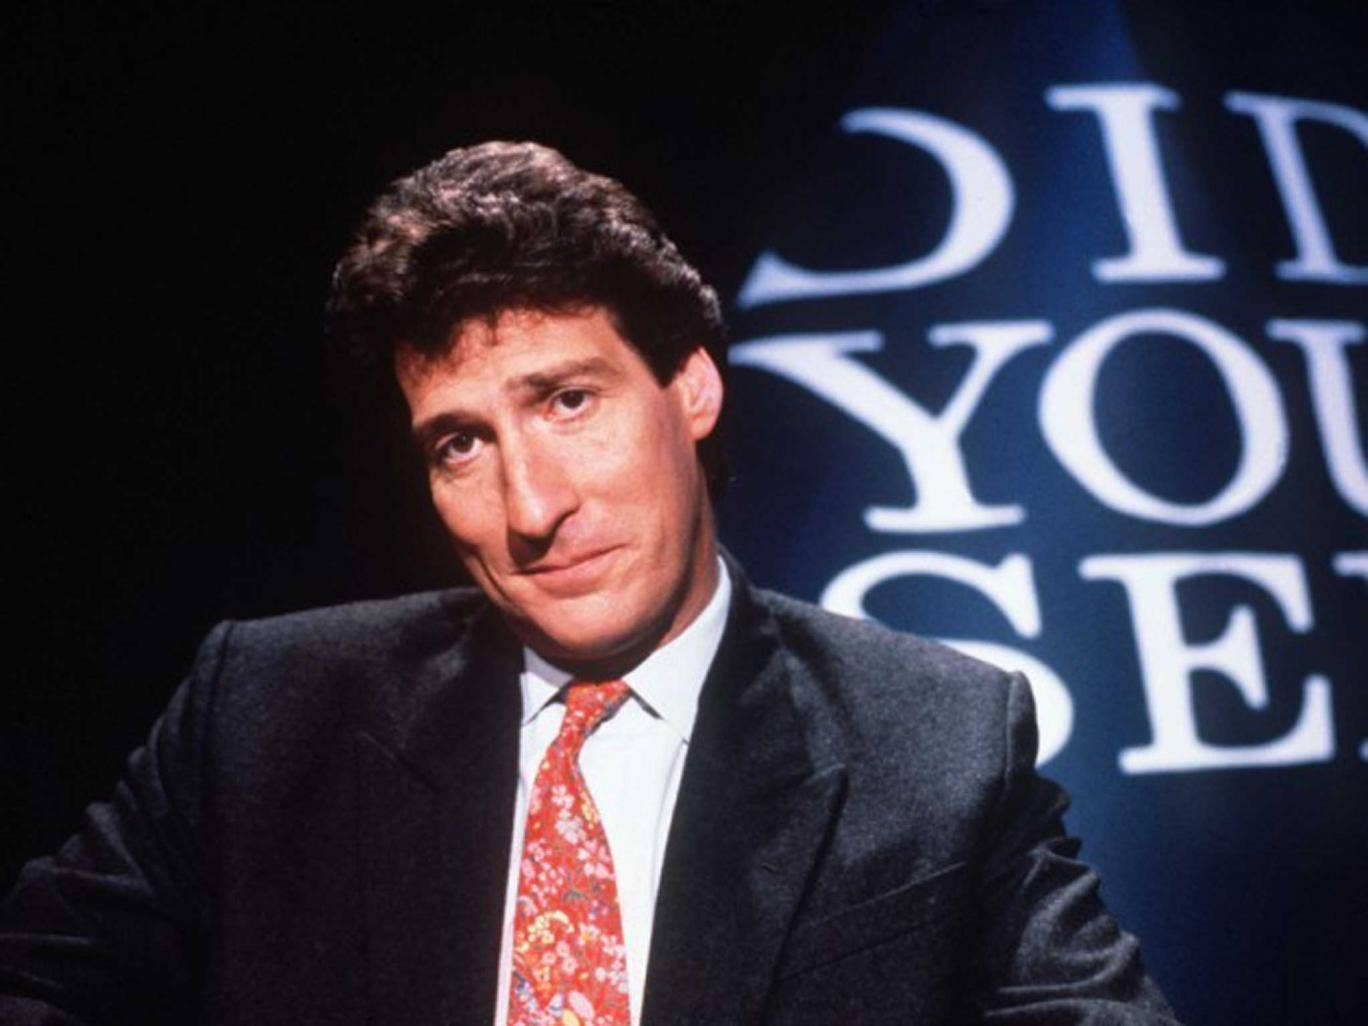 Come on: Paxman (seen here in 1993) has matured without turning to grandfatherly fustiness